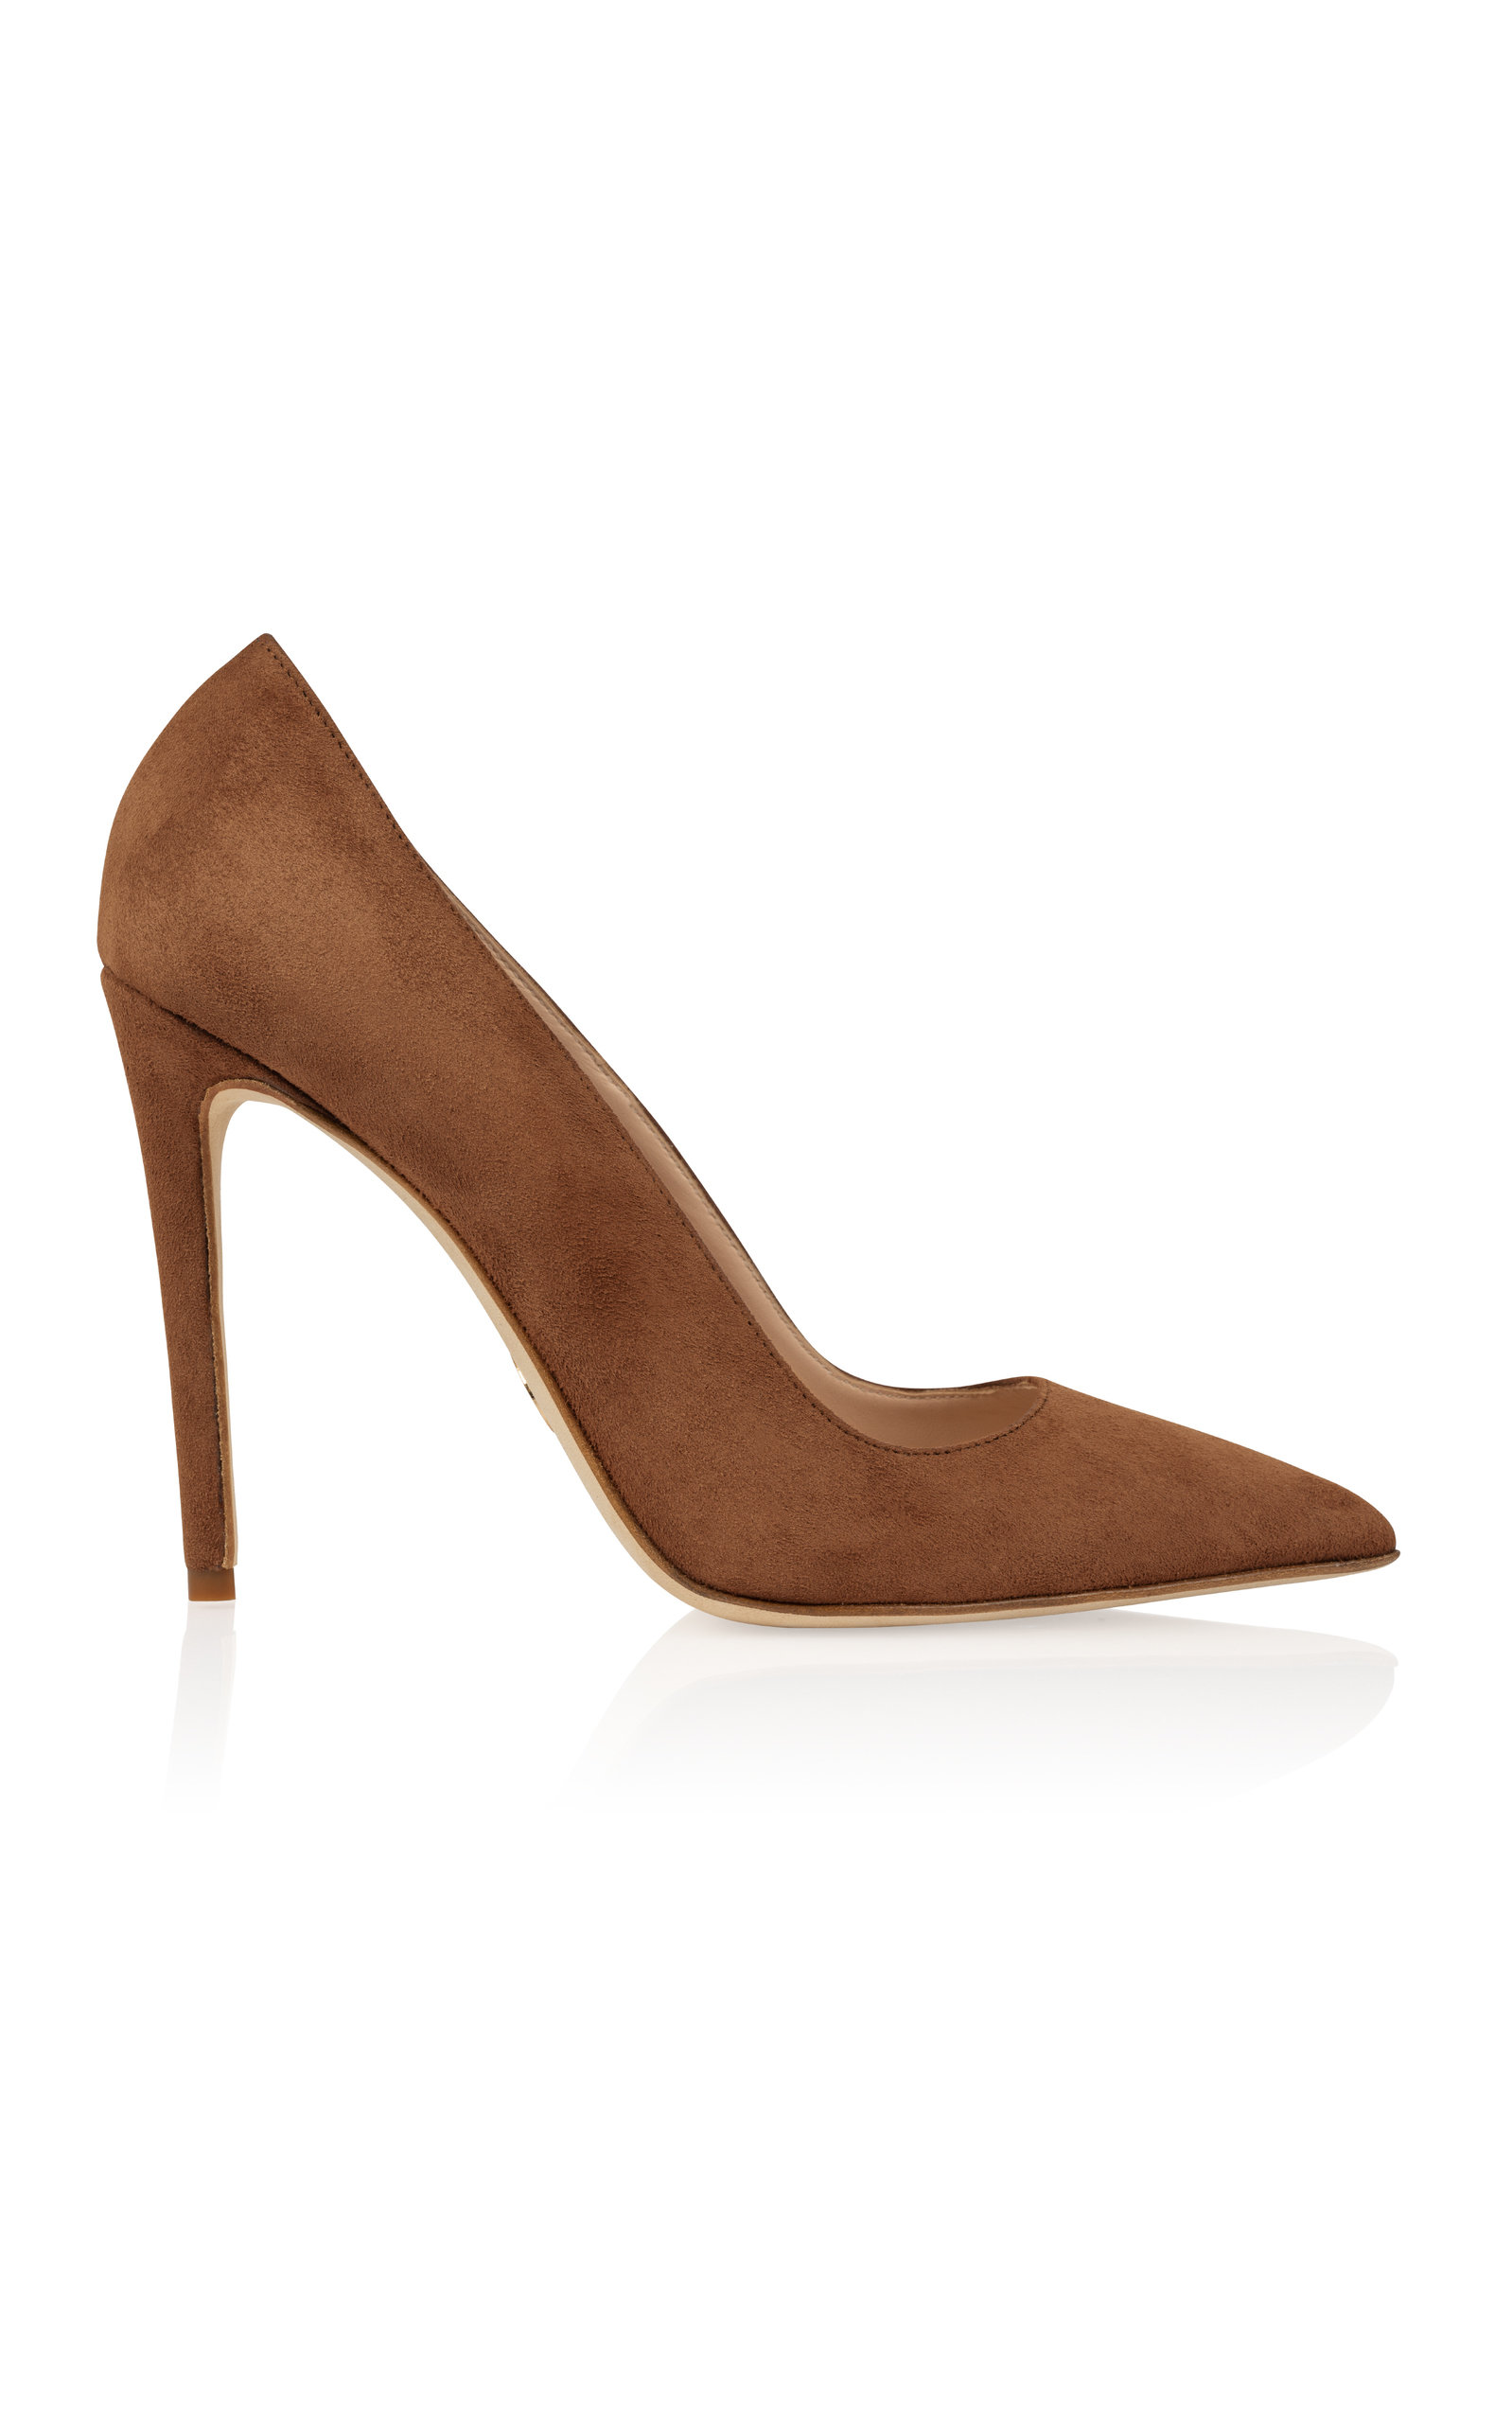 Brother Vellies Pumps M'O EXCLUSIVE CICELY THE NEW NUDE PUMPS